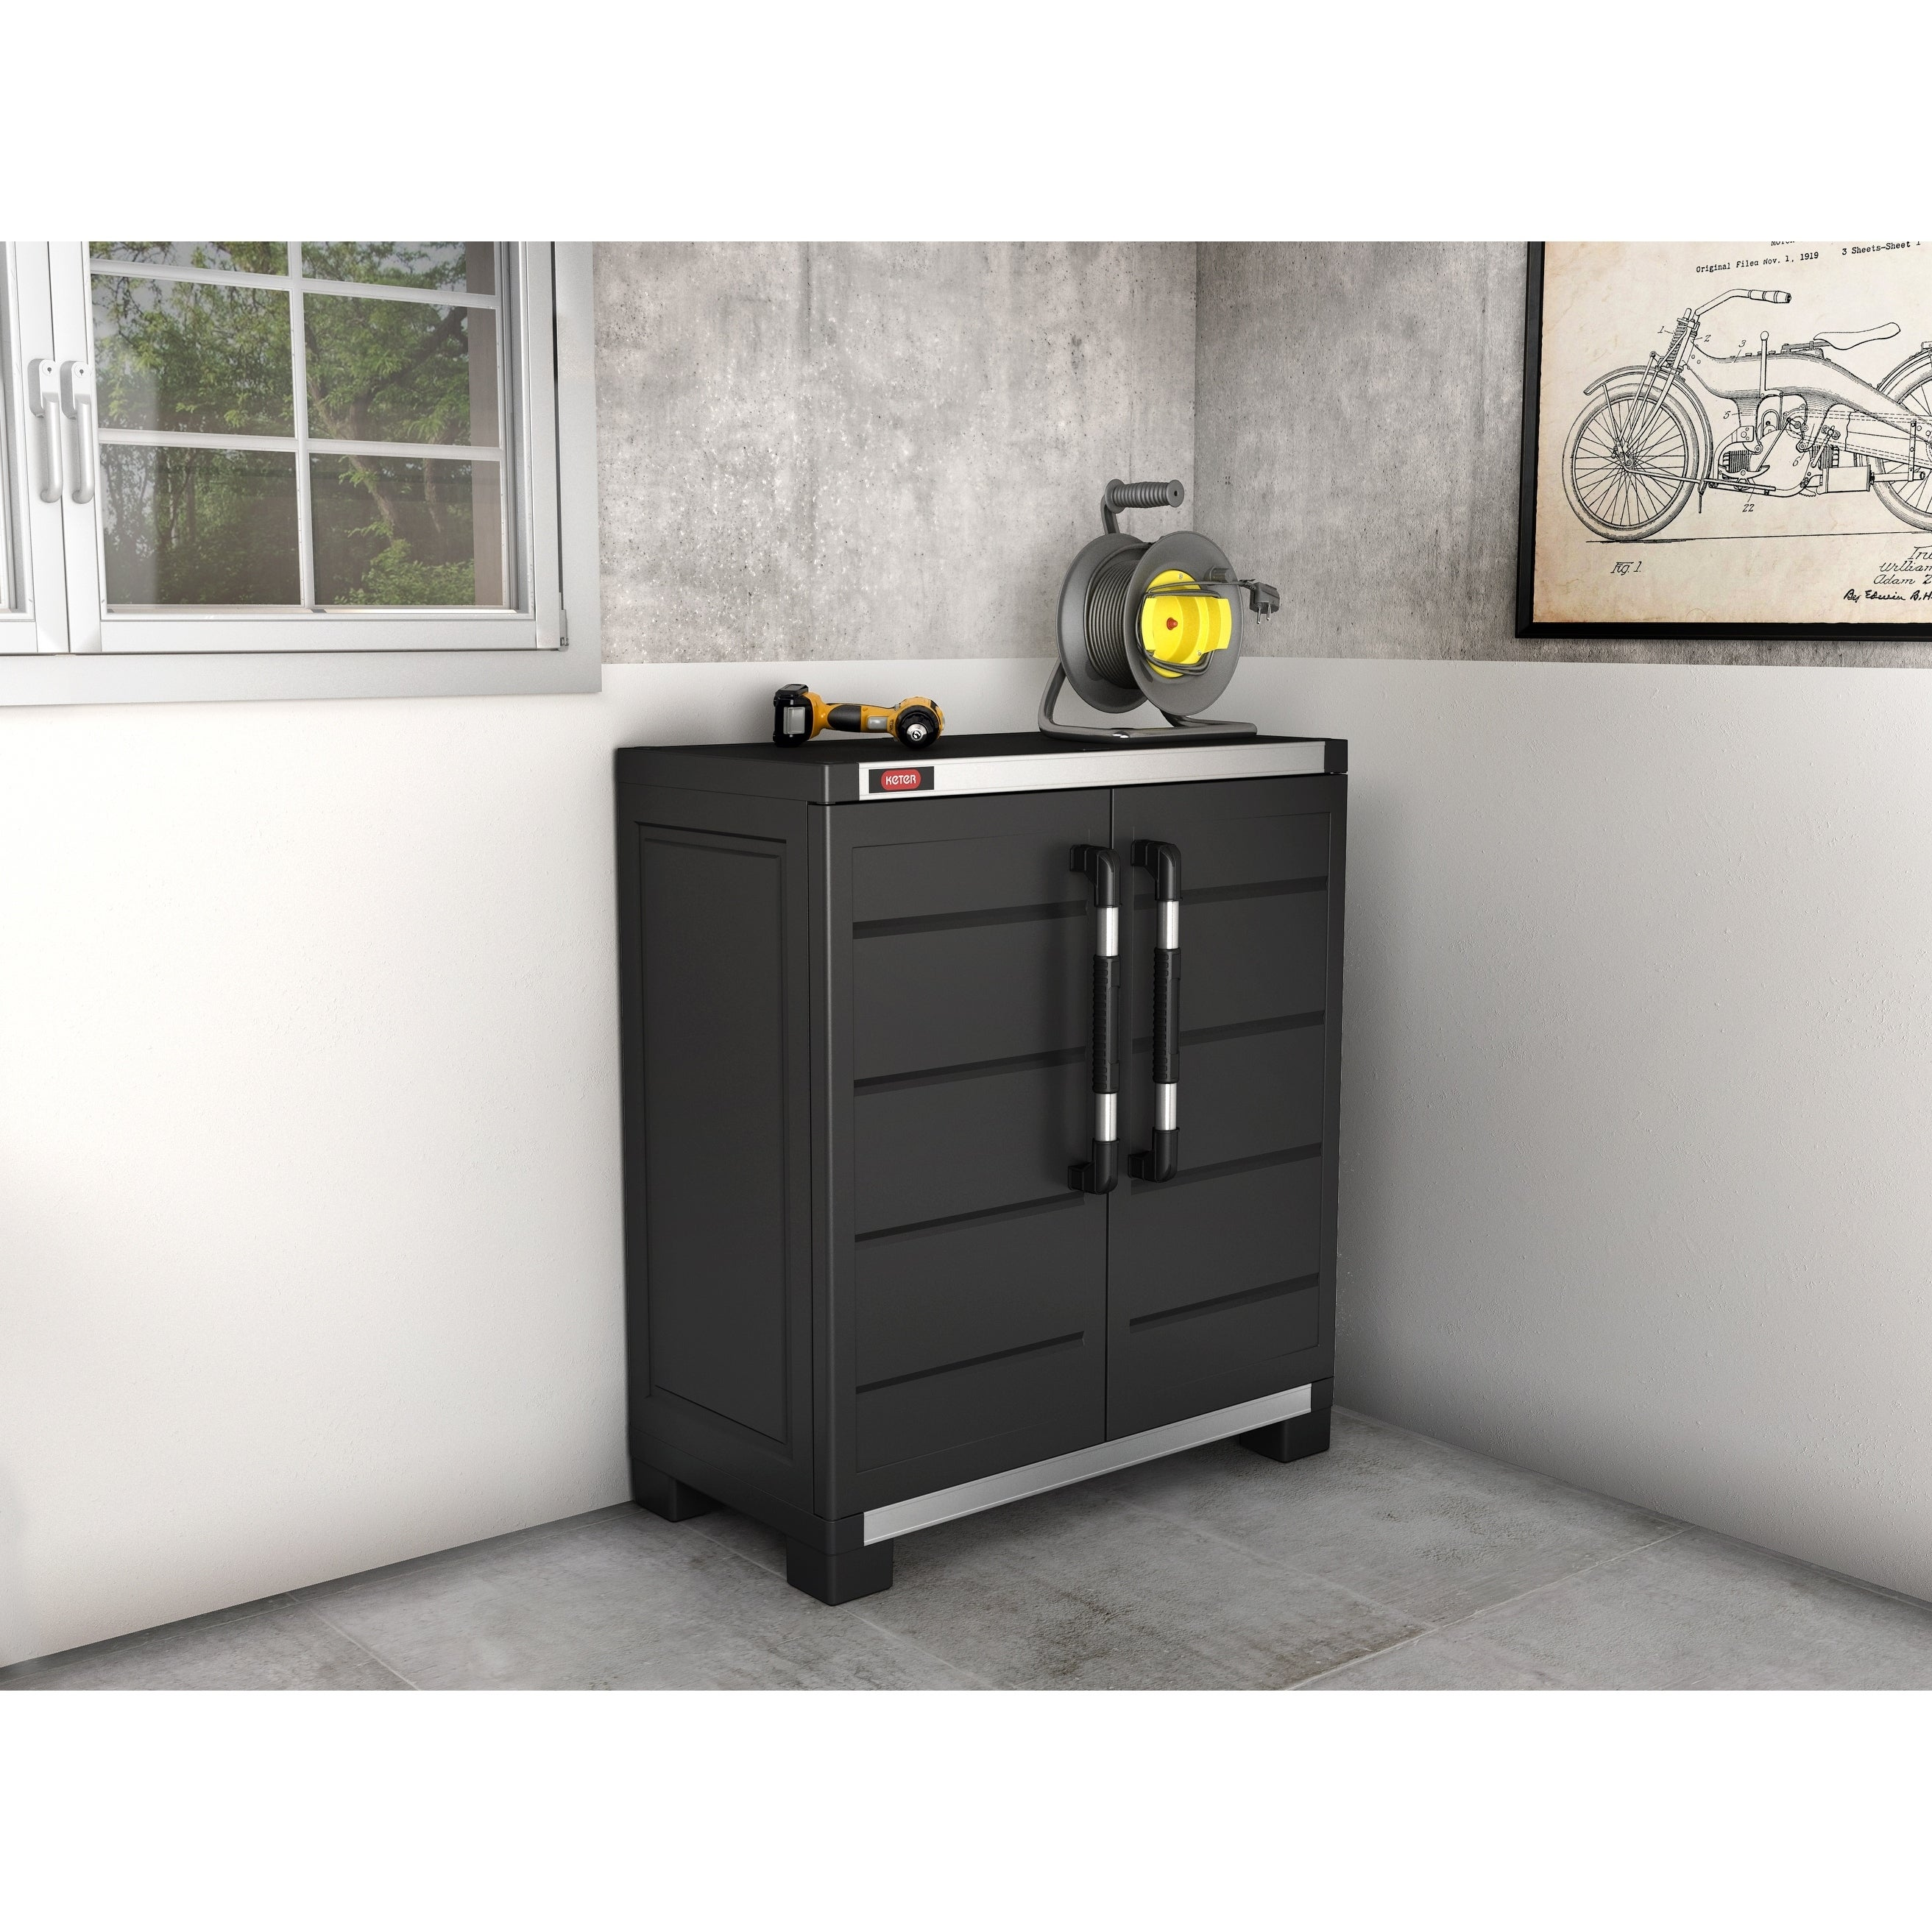 Shop Keter XL Pro Plastic Resin Utility Storage Cabinet With Adjustable  Shelves   Free Shipping Today   Overstock.com   18705326